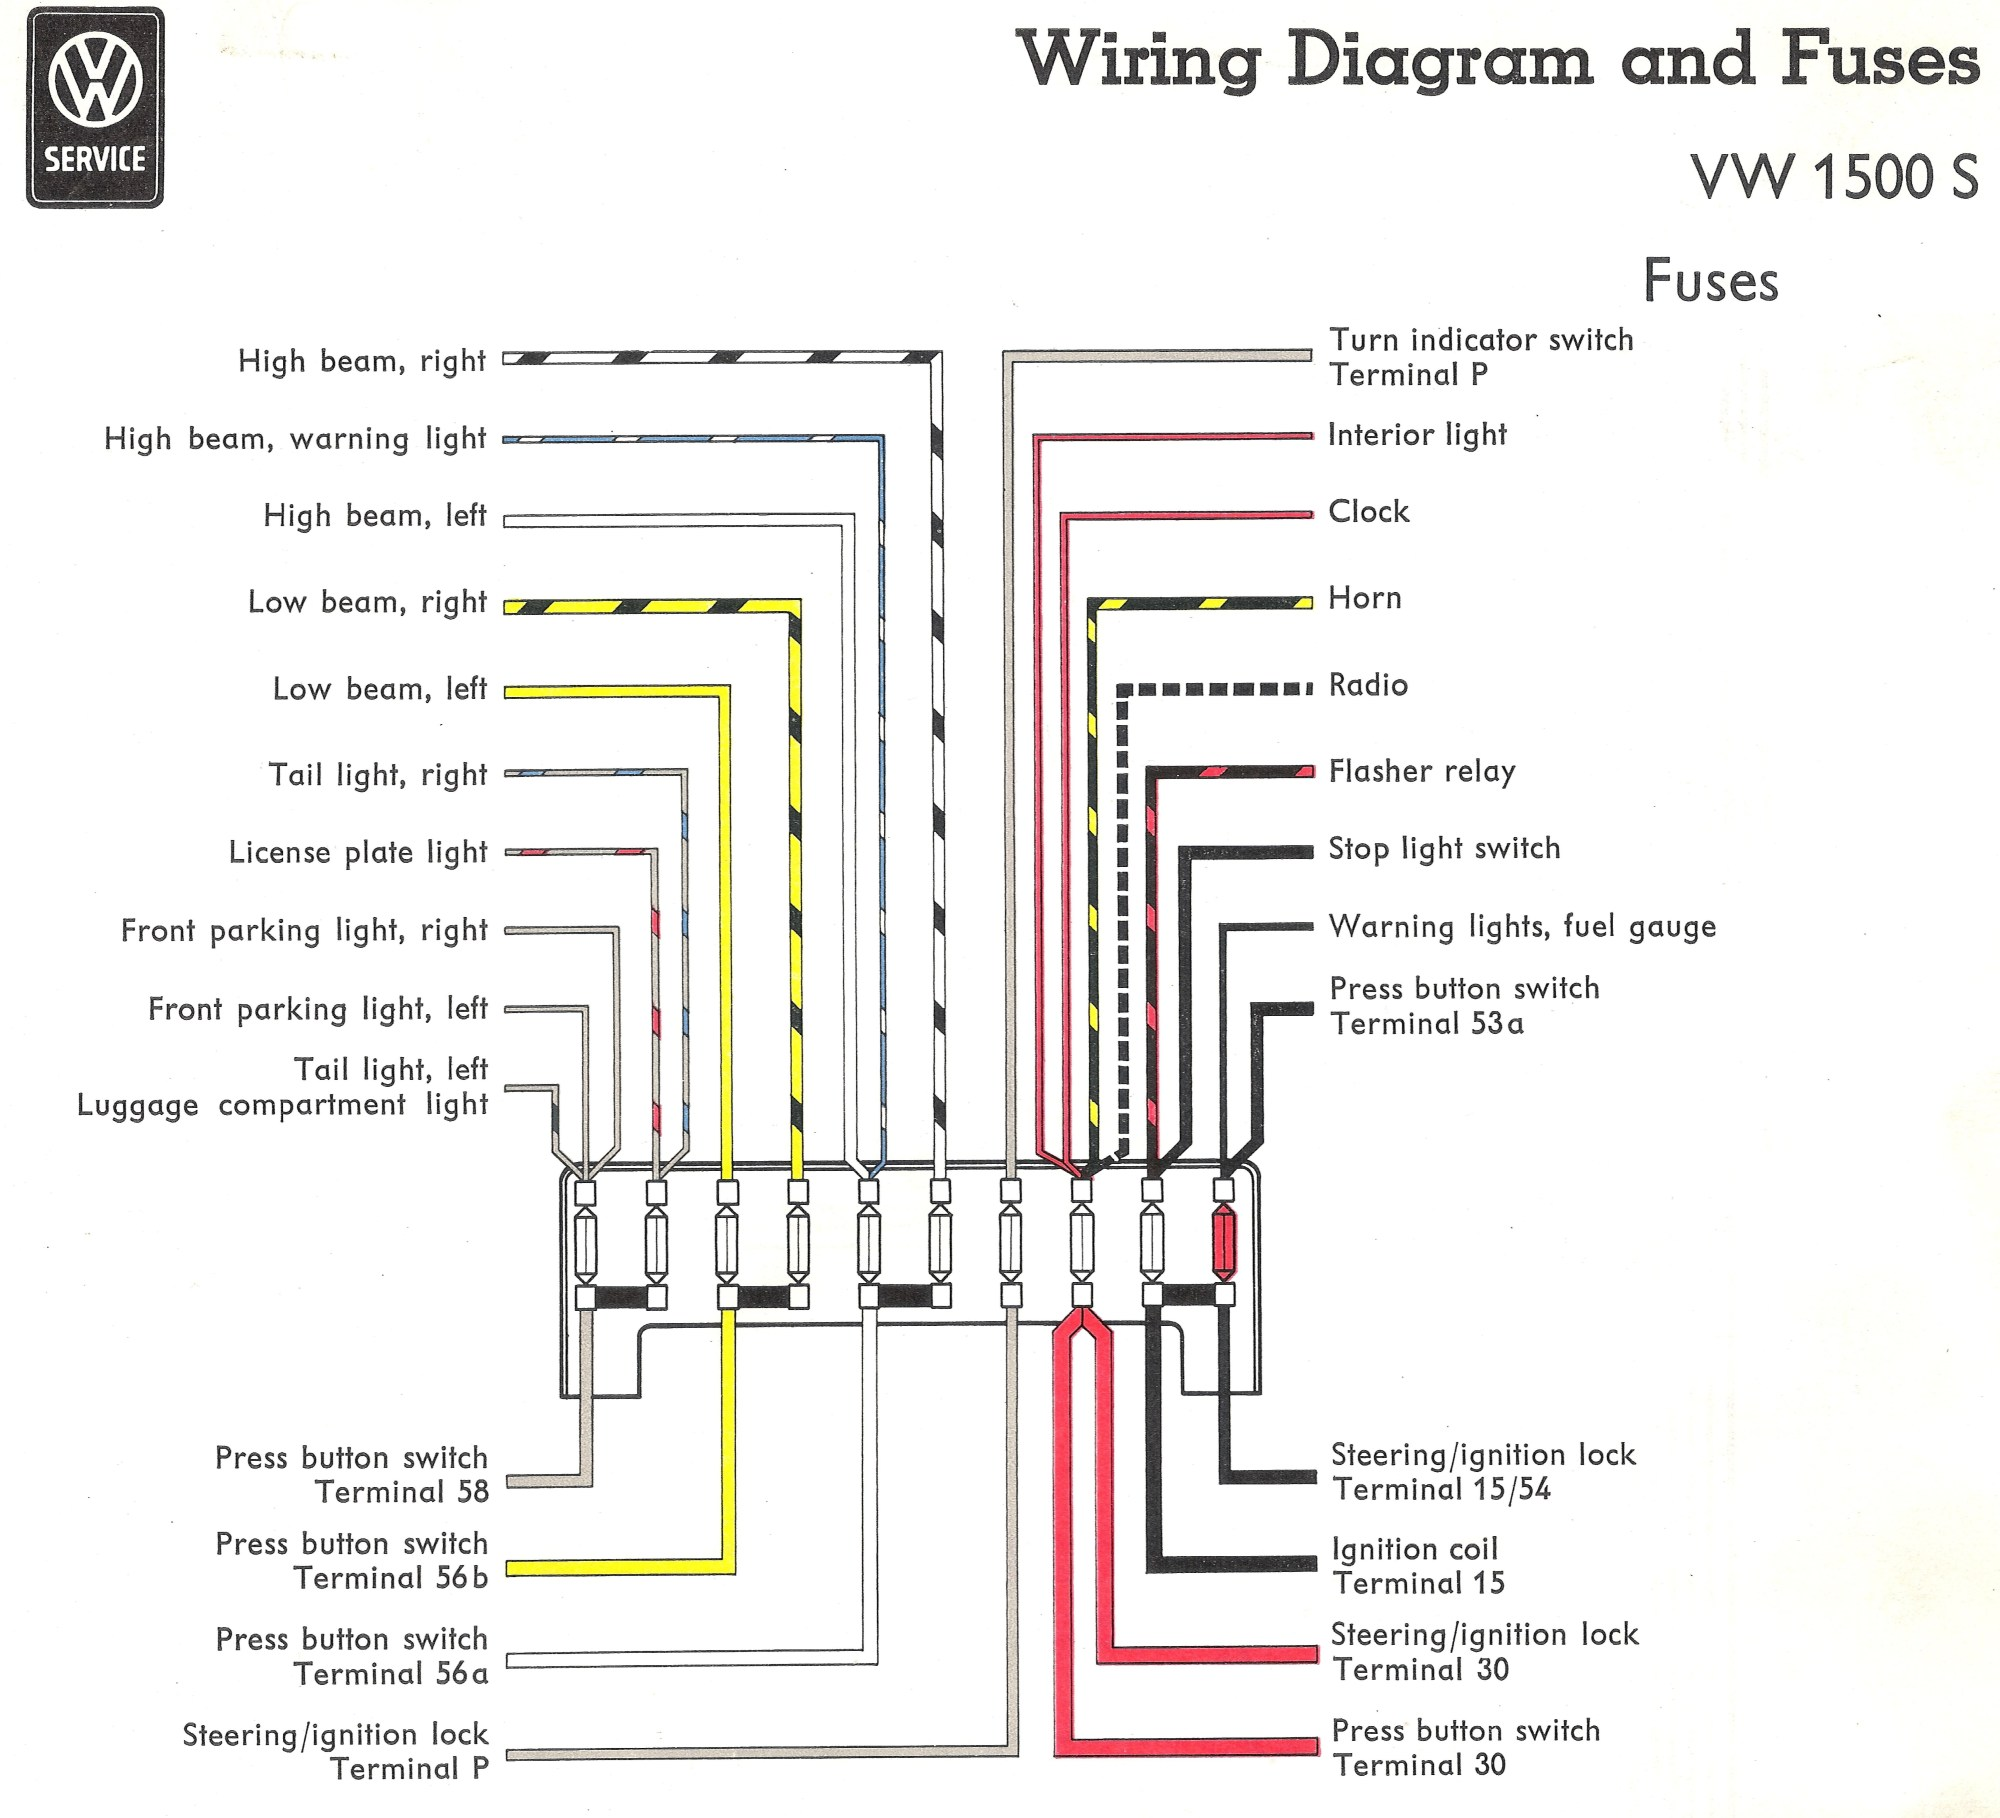 hight resolution of 2001 vw passat engine diagram vw wiring and fuses wiring info of 2001 vw passat